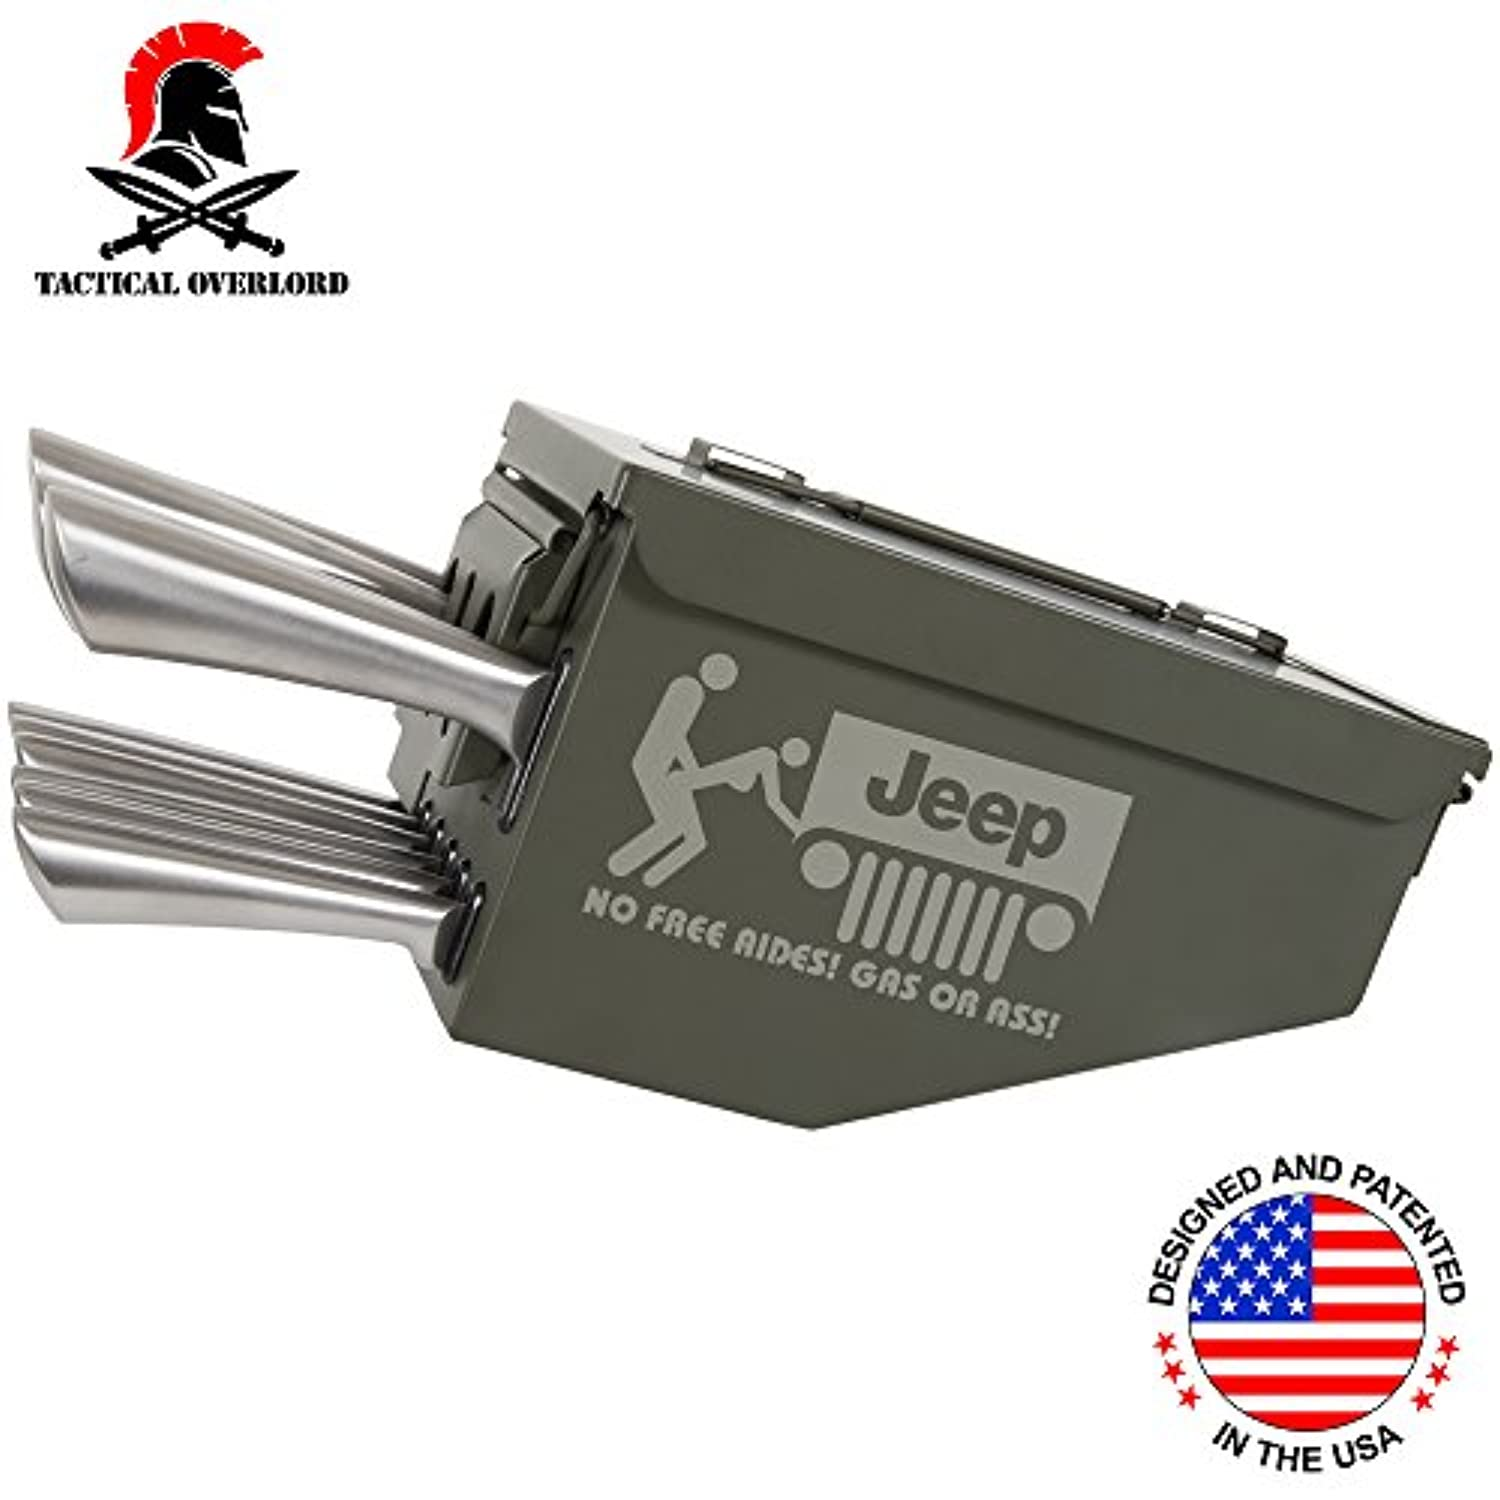 Tactical Overlordジープno free rides Engraved 10 Piece Ammo CanボックスナイフブロックCulteryセットユーティリティストレージオーガナイザー